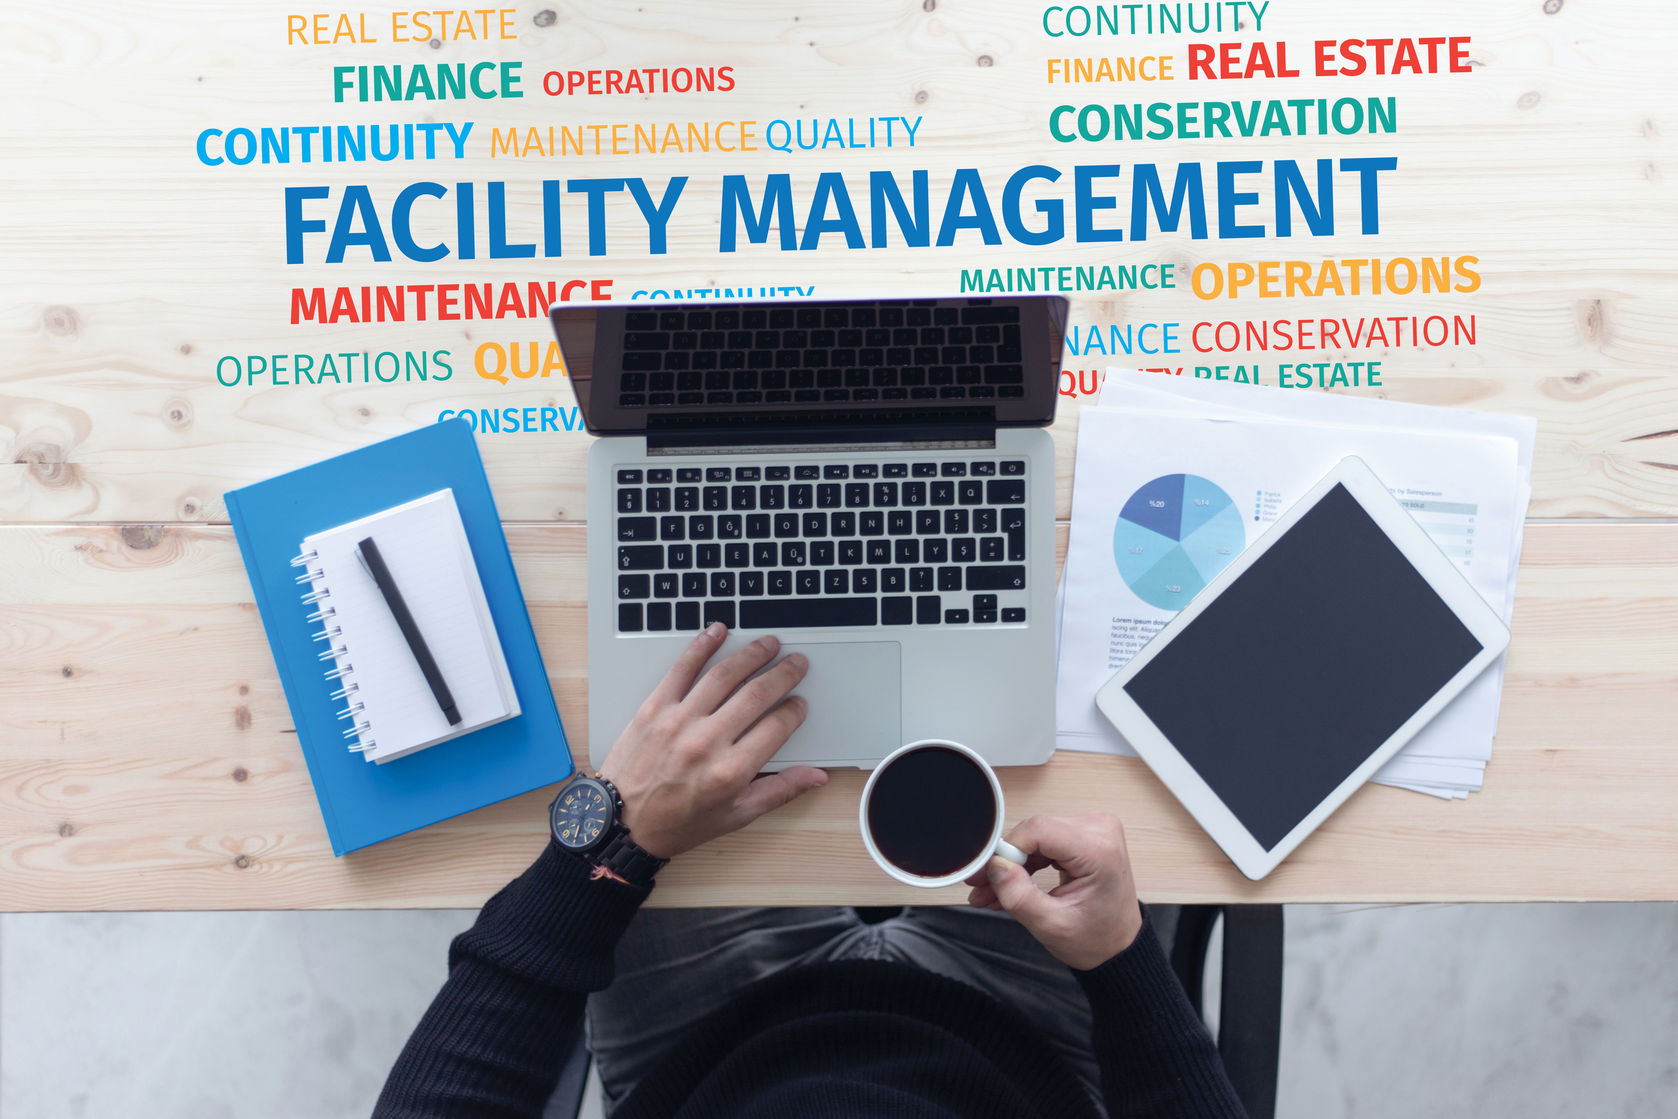 Facilities Management Services by Driven Facilities Management